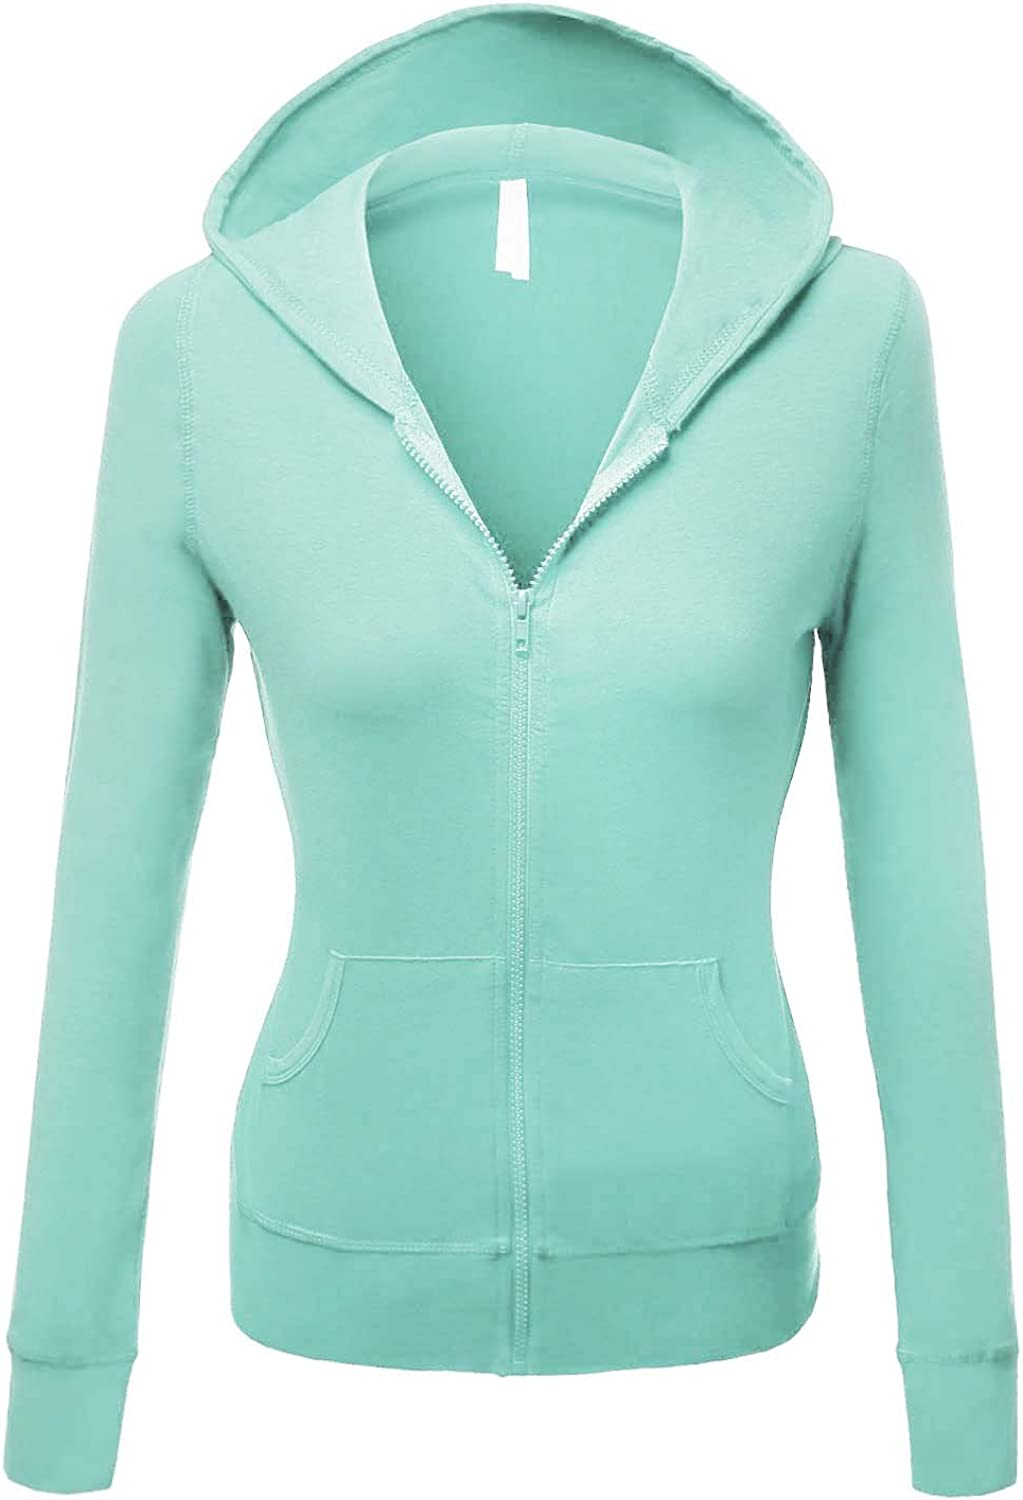 Makeitmint Women's Basic Light Weight Zip Up Hoodie Jacket [S3XL]